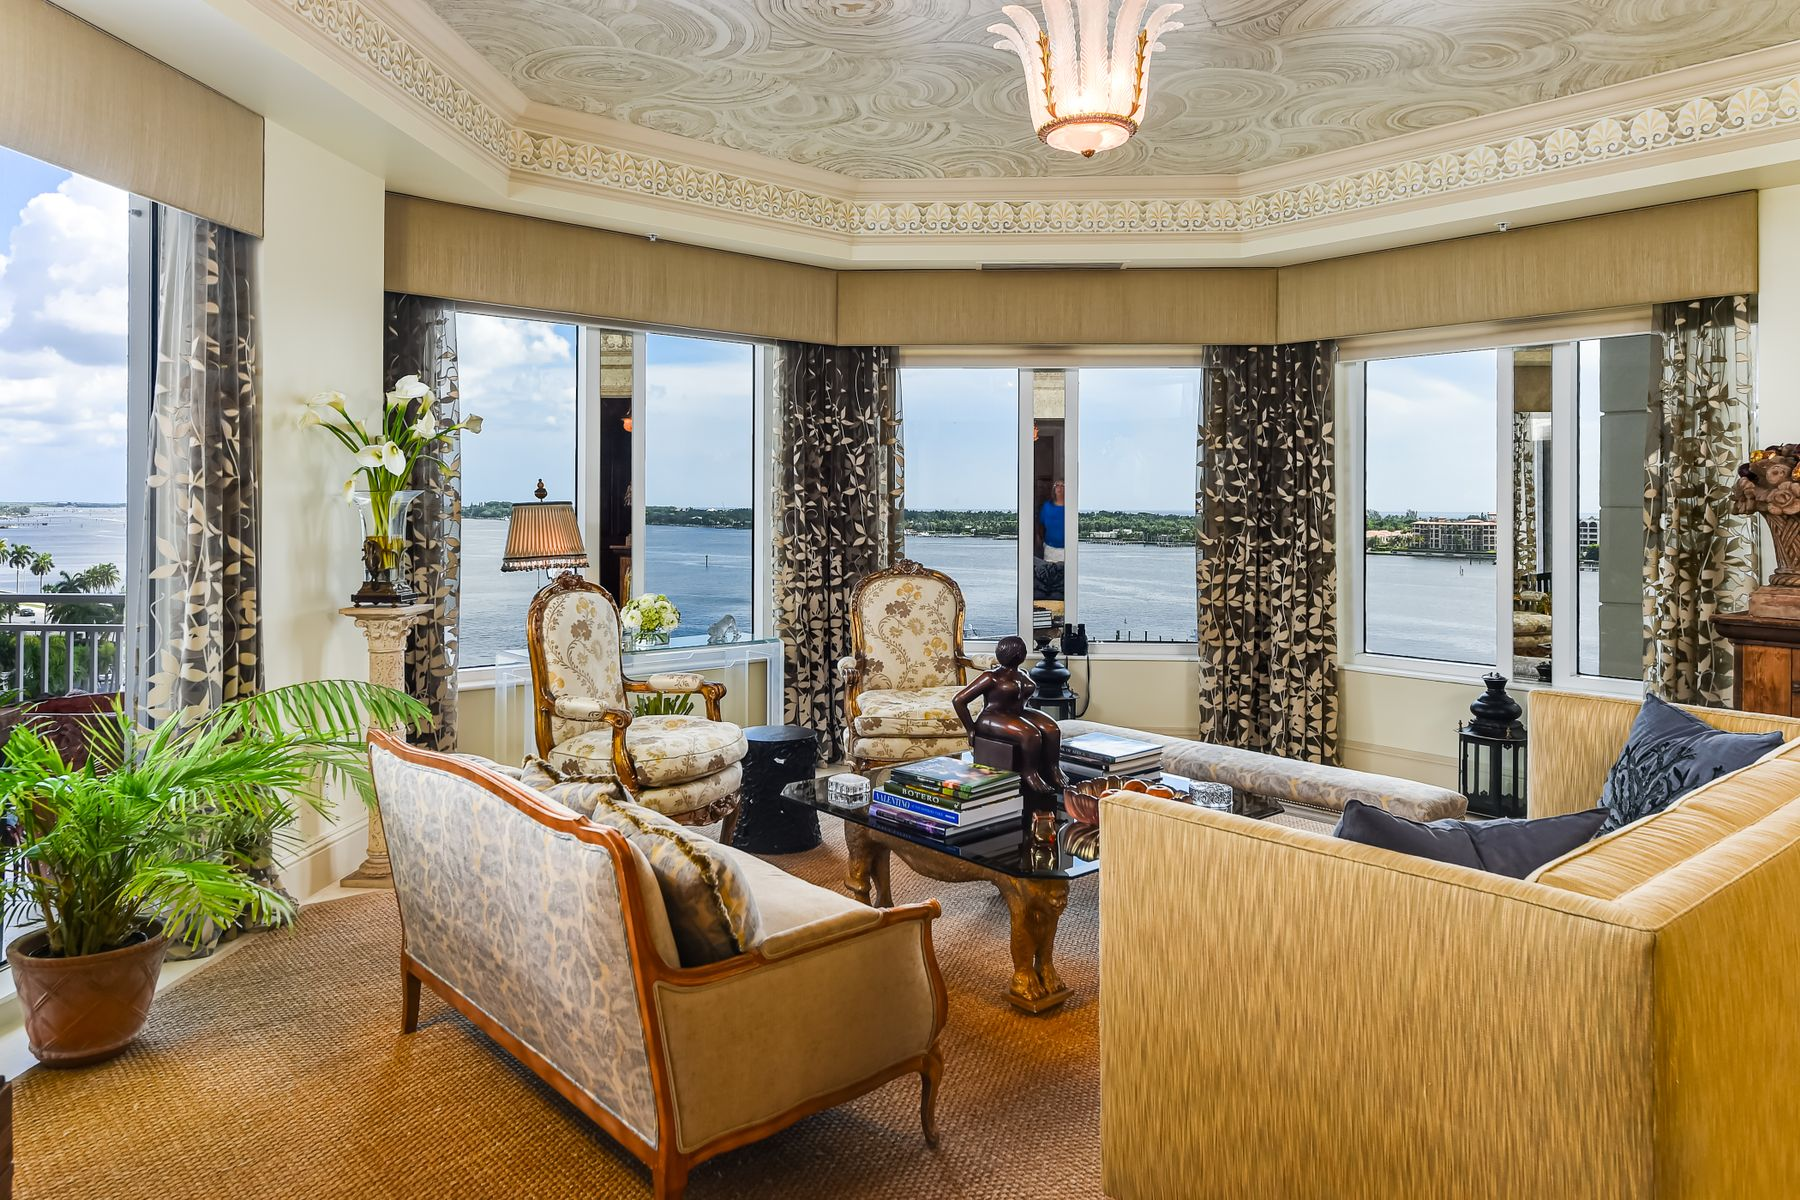 Condominiums for Sale at One Watermark Place Unit 701 622 N Flagler Dr Apt 701 West Palm Beach, Florida 33401 United States